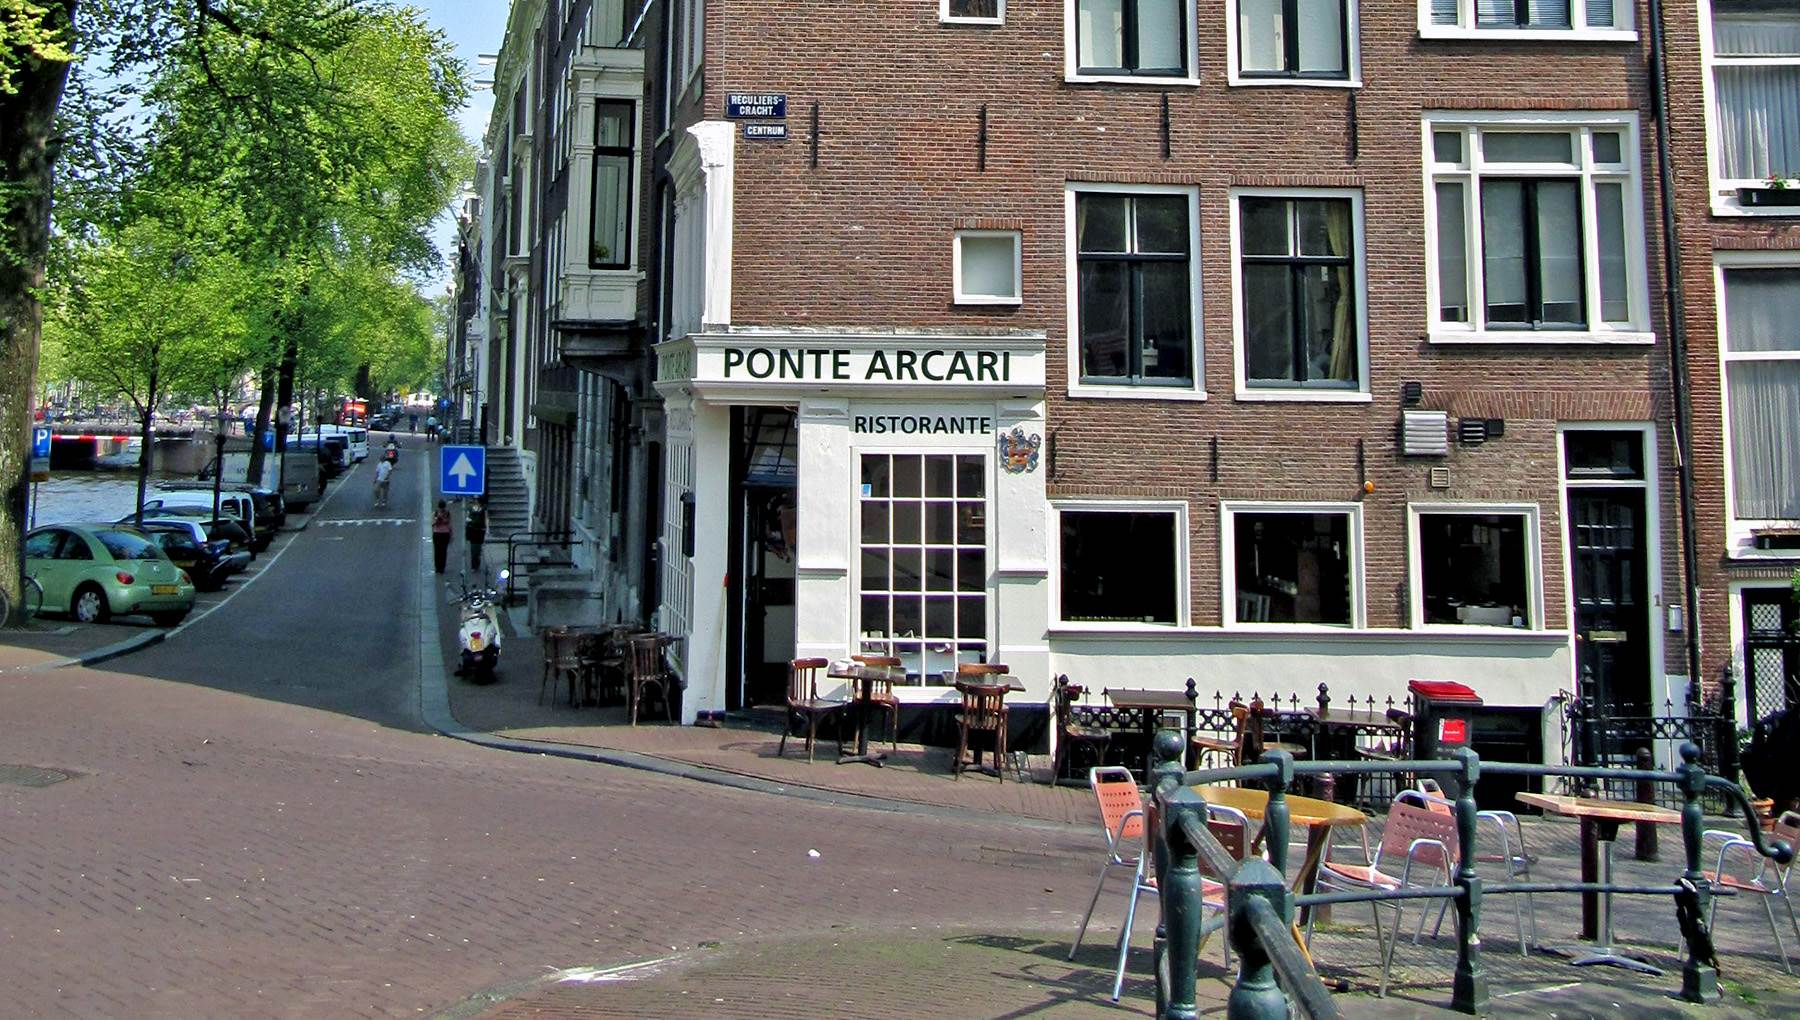 Ponte Arcari Amsterdam CC BY-SA 3.0 Michiel1972 via Wikimedia Commons